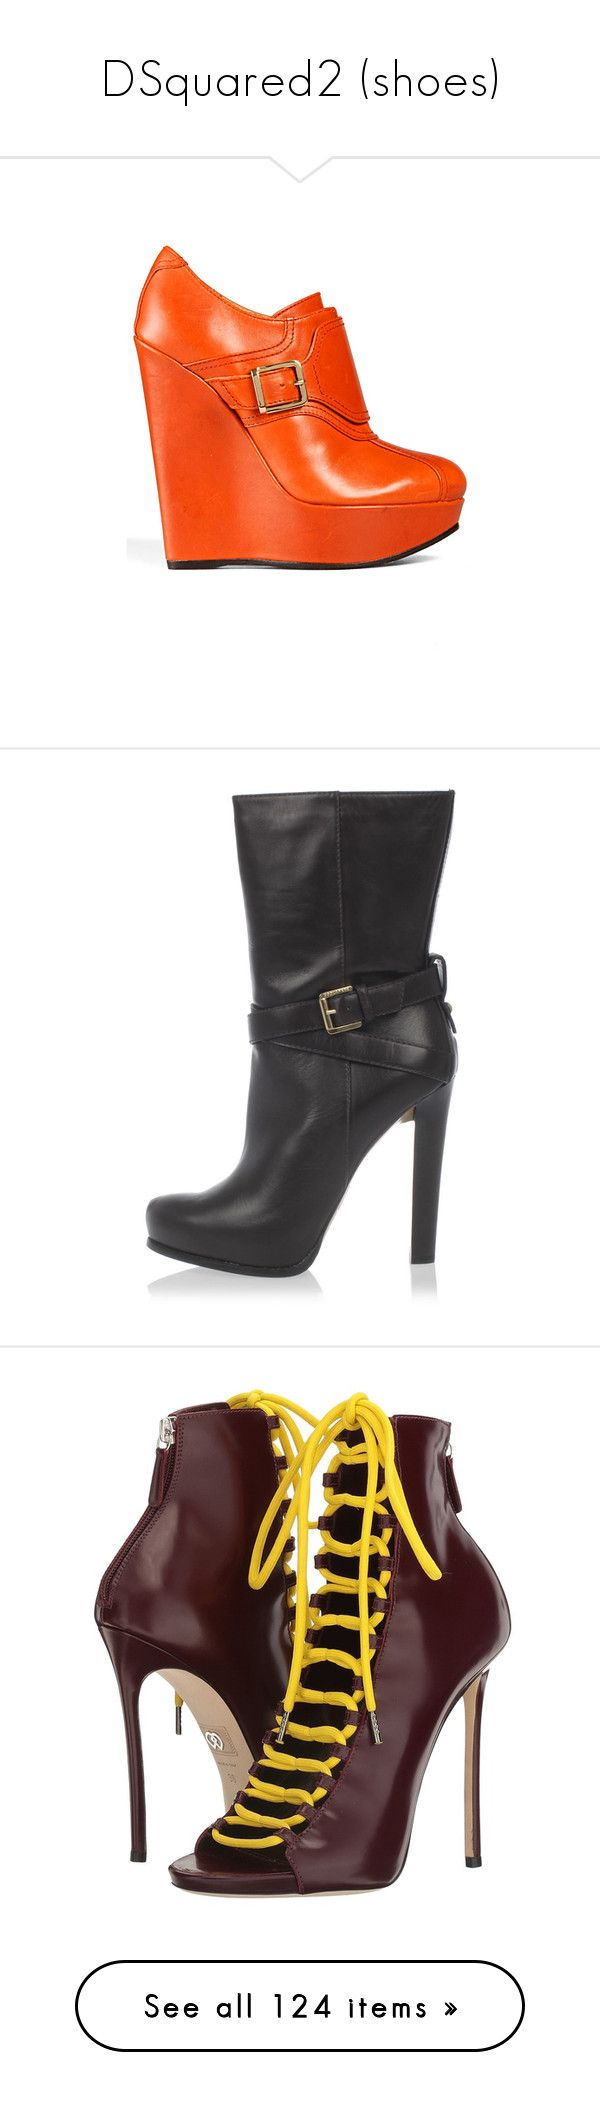 """""""DSquared2 (shoes)"""" by missy-smallen ❤ liked on Polyvore featuring shoes, sandals, red, leather clogs, wooden clogs shoes, red clogs, wood sandals, wooden sandals, boots and ankle booties"""